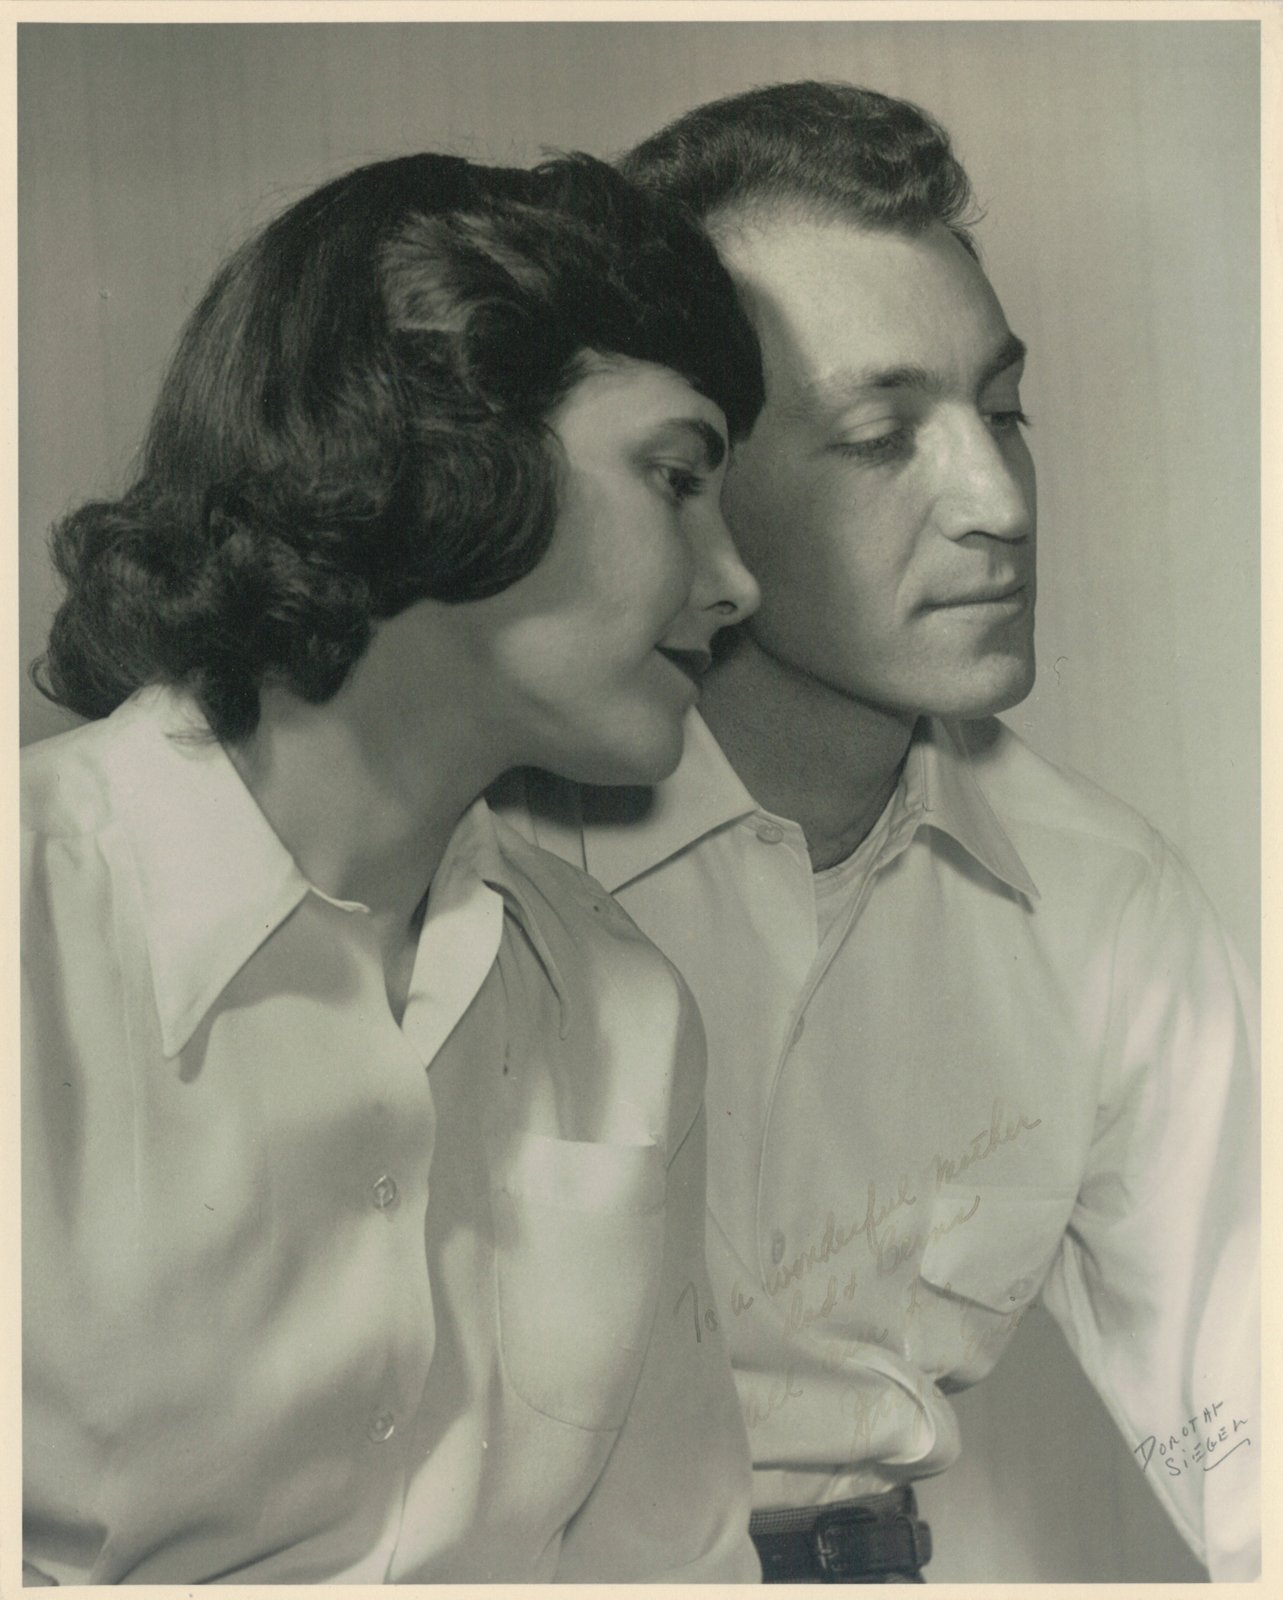 The designing couple: Evelyn and Jerome Ackerman, 1948. Image: Milton Lipton  A Marriage of Craft and Design by Miyoko Ohtake